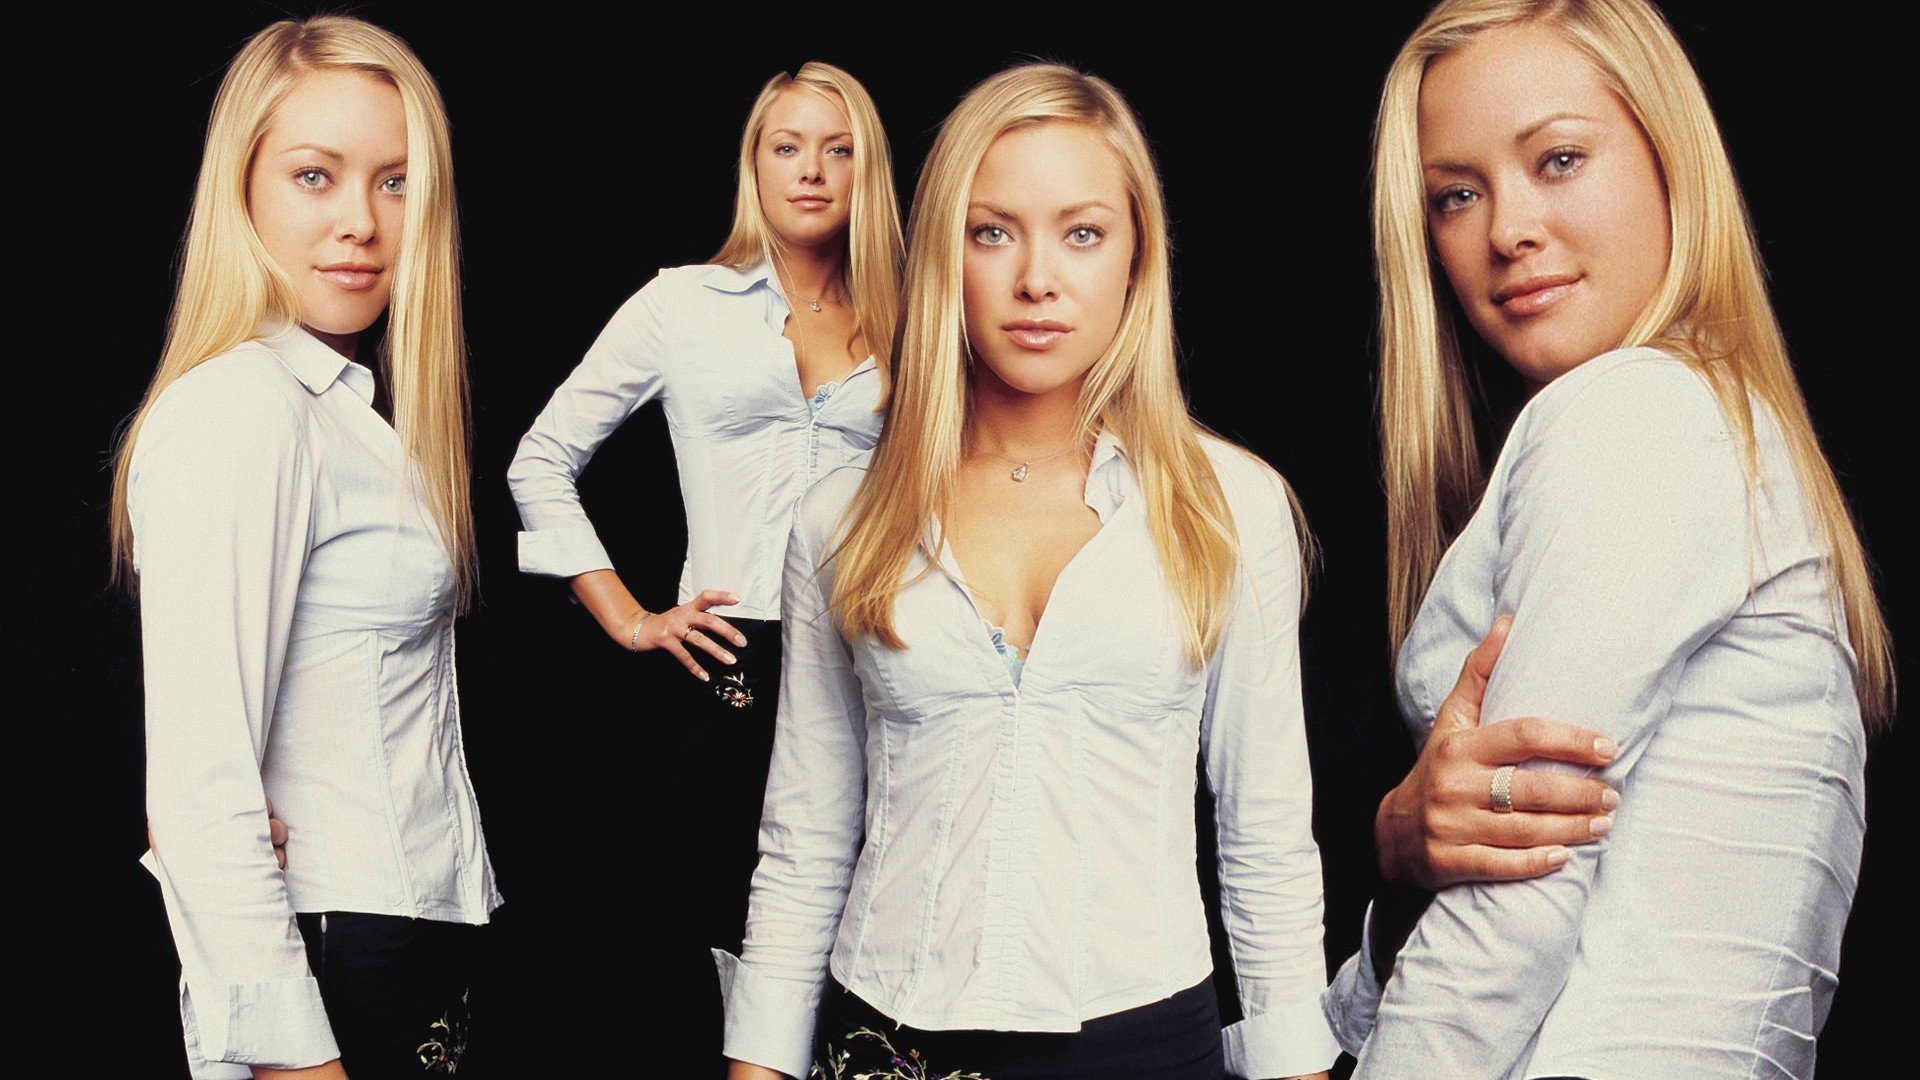 Free download Kristanna Loken background ID:185632 hd 1080p for computer